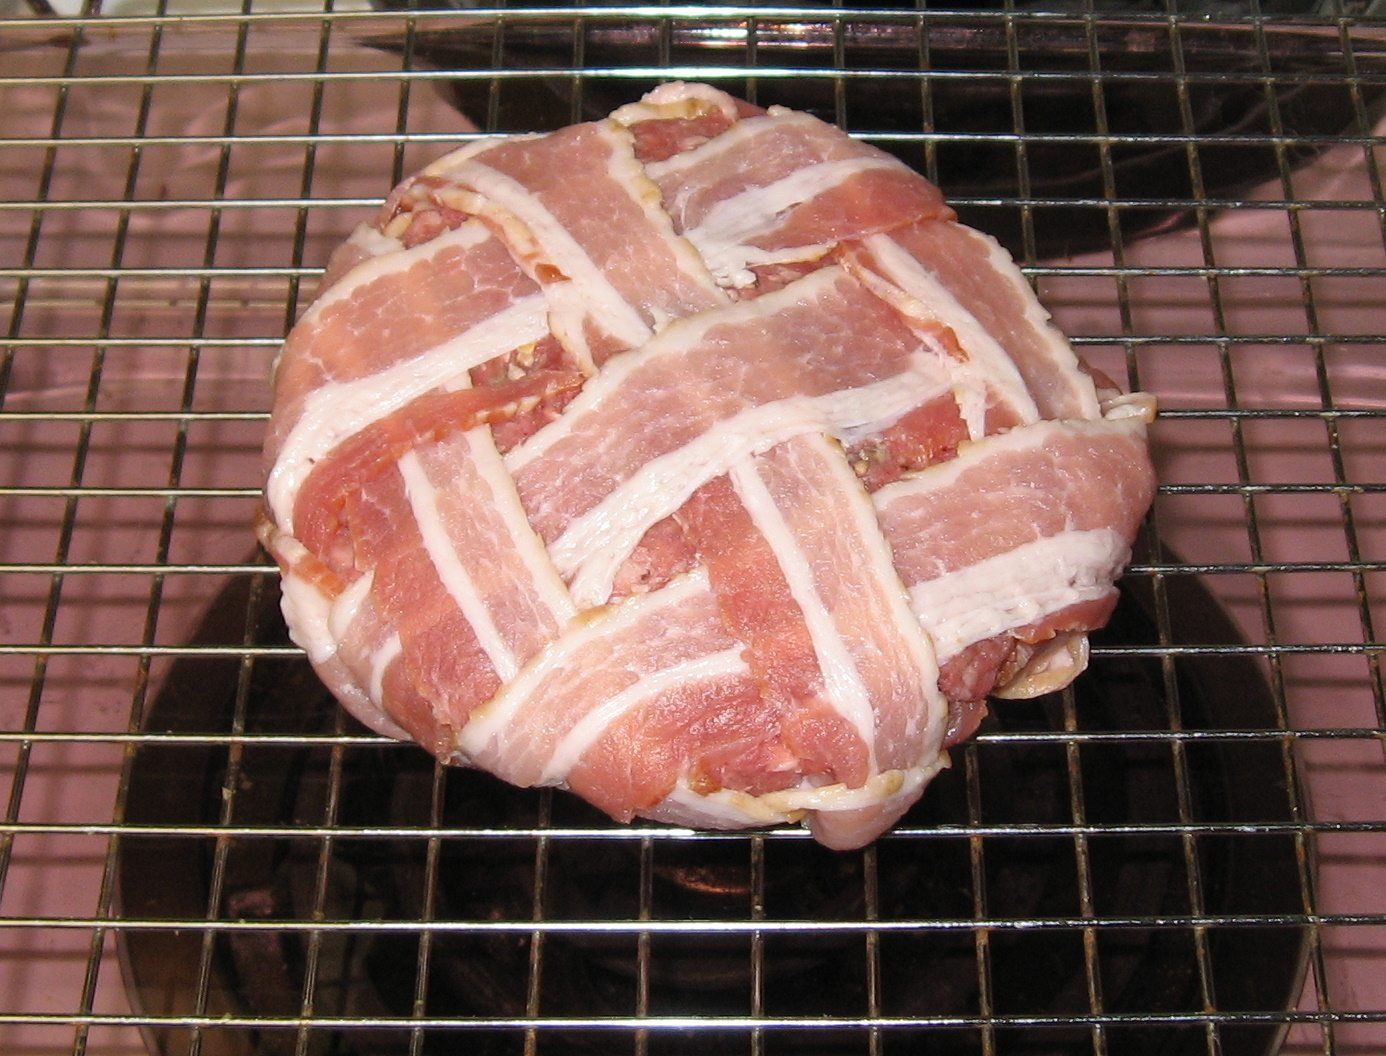 ... International Bacon Day: A Burger Wrapped in 10 Bacon Strips